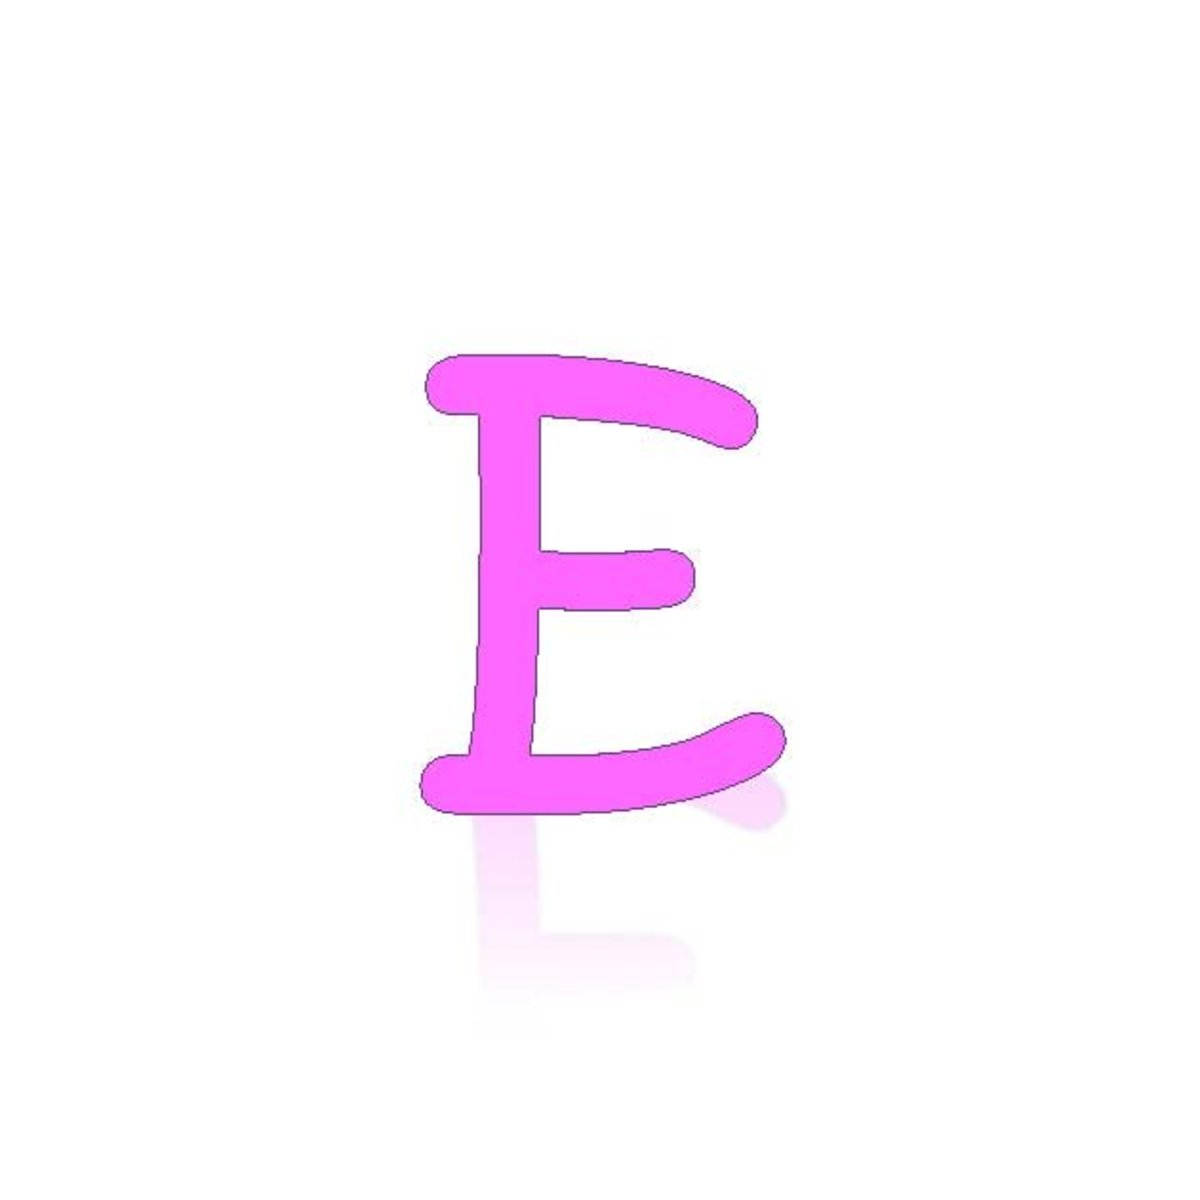 Acrostic Name Poems For Girls Names Starting With E Hubpages